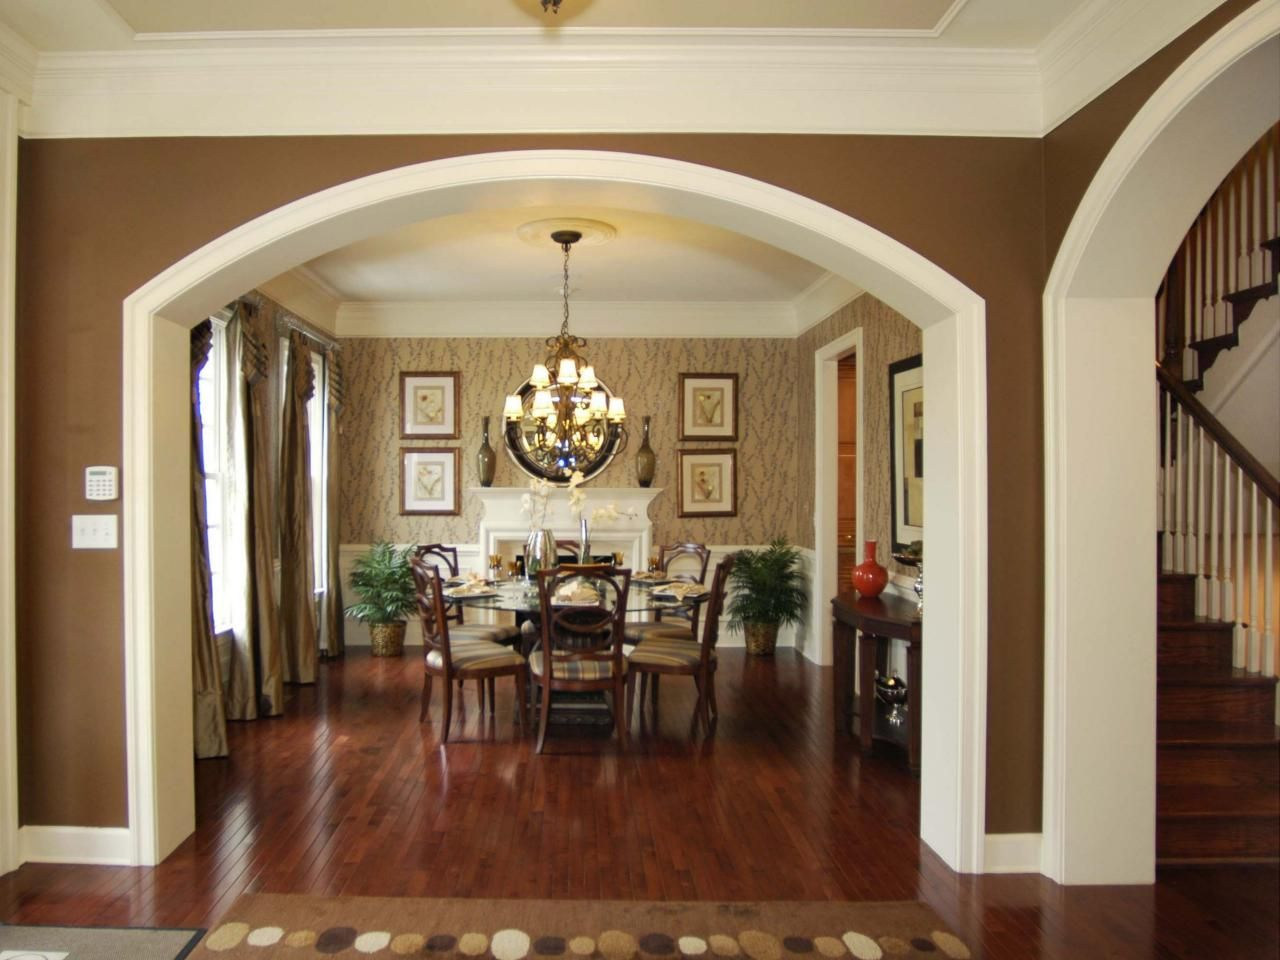 Rich brown hardwood floors create a seamless transition to the dining area, complete with classic wood dining chairs and large chandelier. Beige wallpaper with a subtle pattern provides contrast to the bold white crown molding and fireplace.